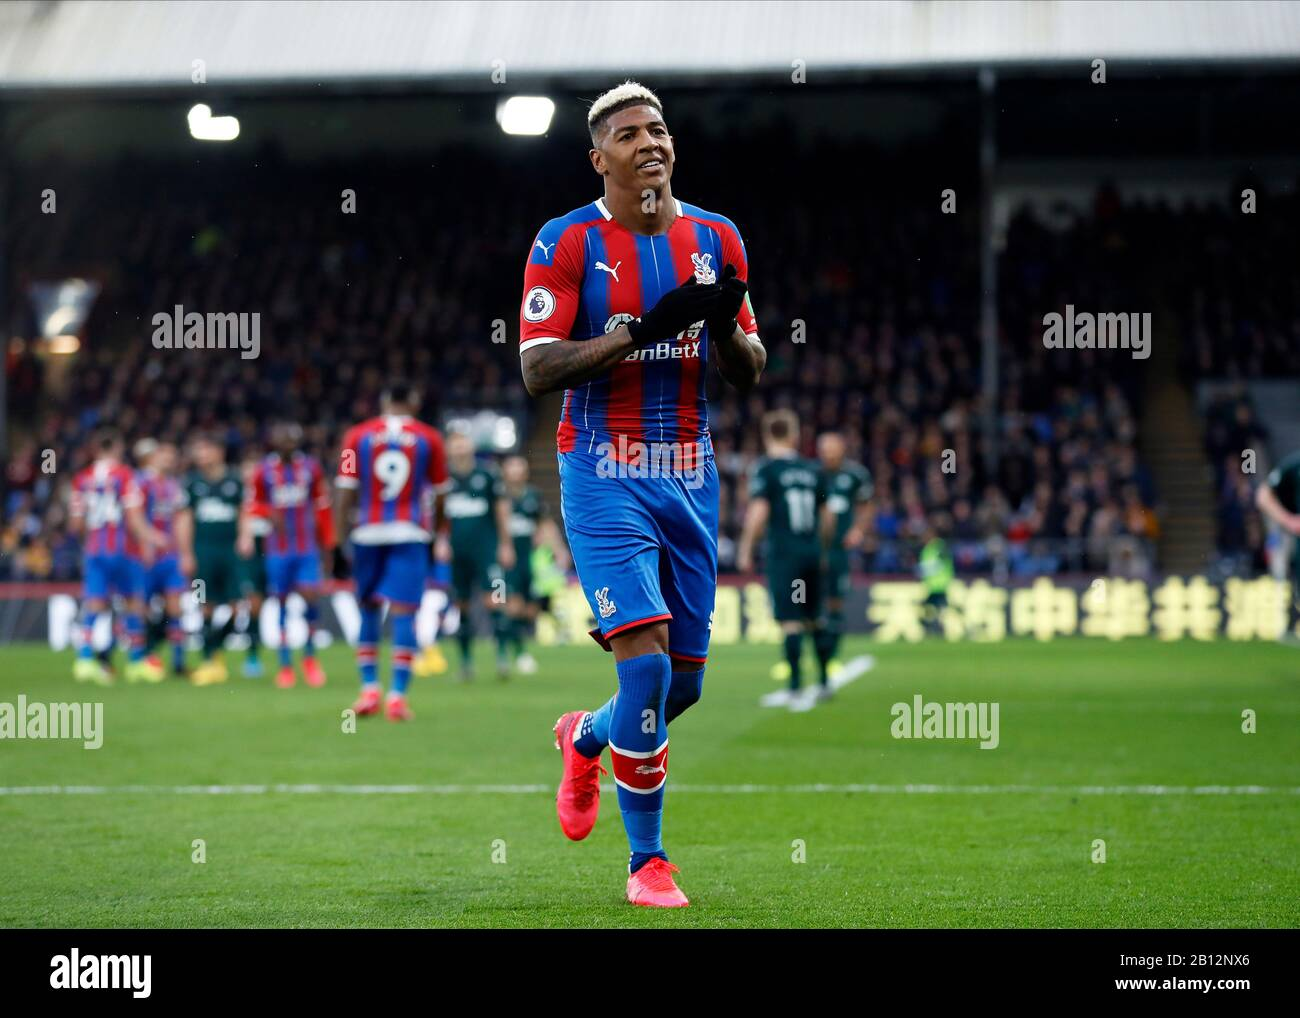 Selhurst Park, London, UK. 22nd Feb, 2020. English Premier League Football, Crystal Palace versus Newcastle United; Patrick van Aanholt of Crystal Palace applauds the fans after the final whistle Credit: Action Plus Sports/Alamy Live News Stock Photo